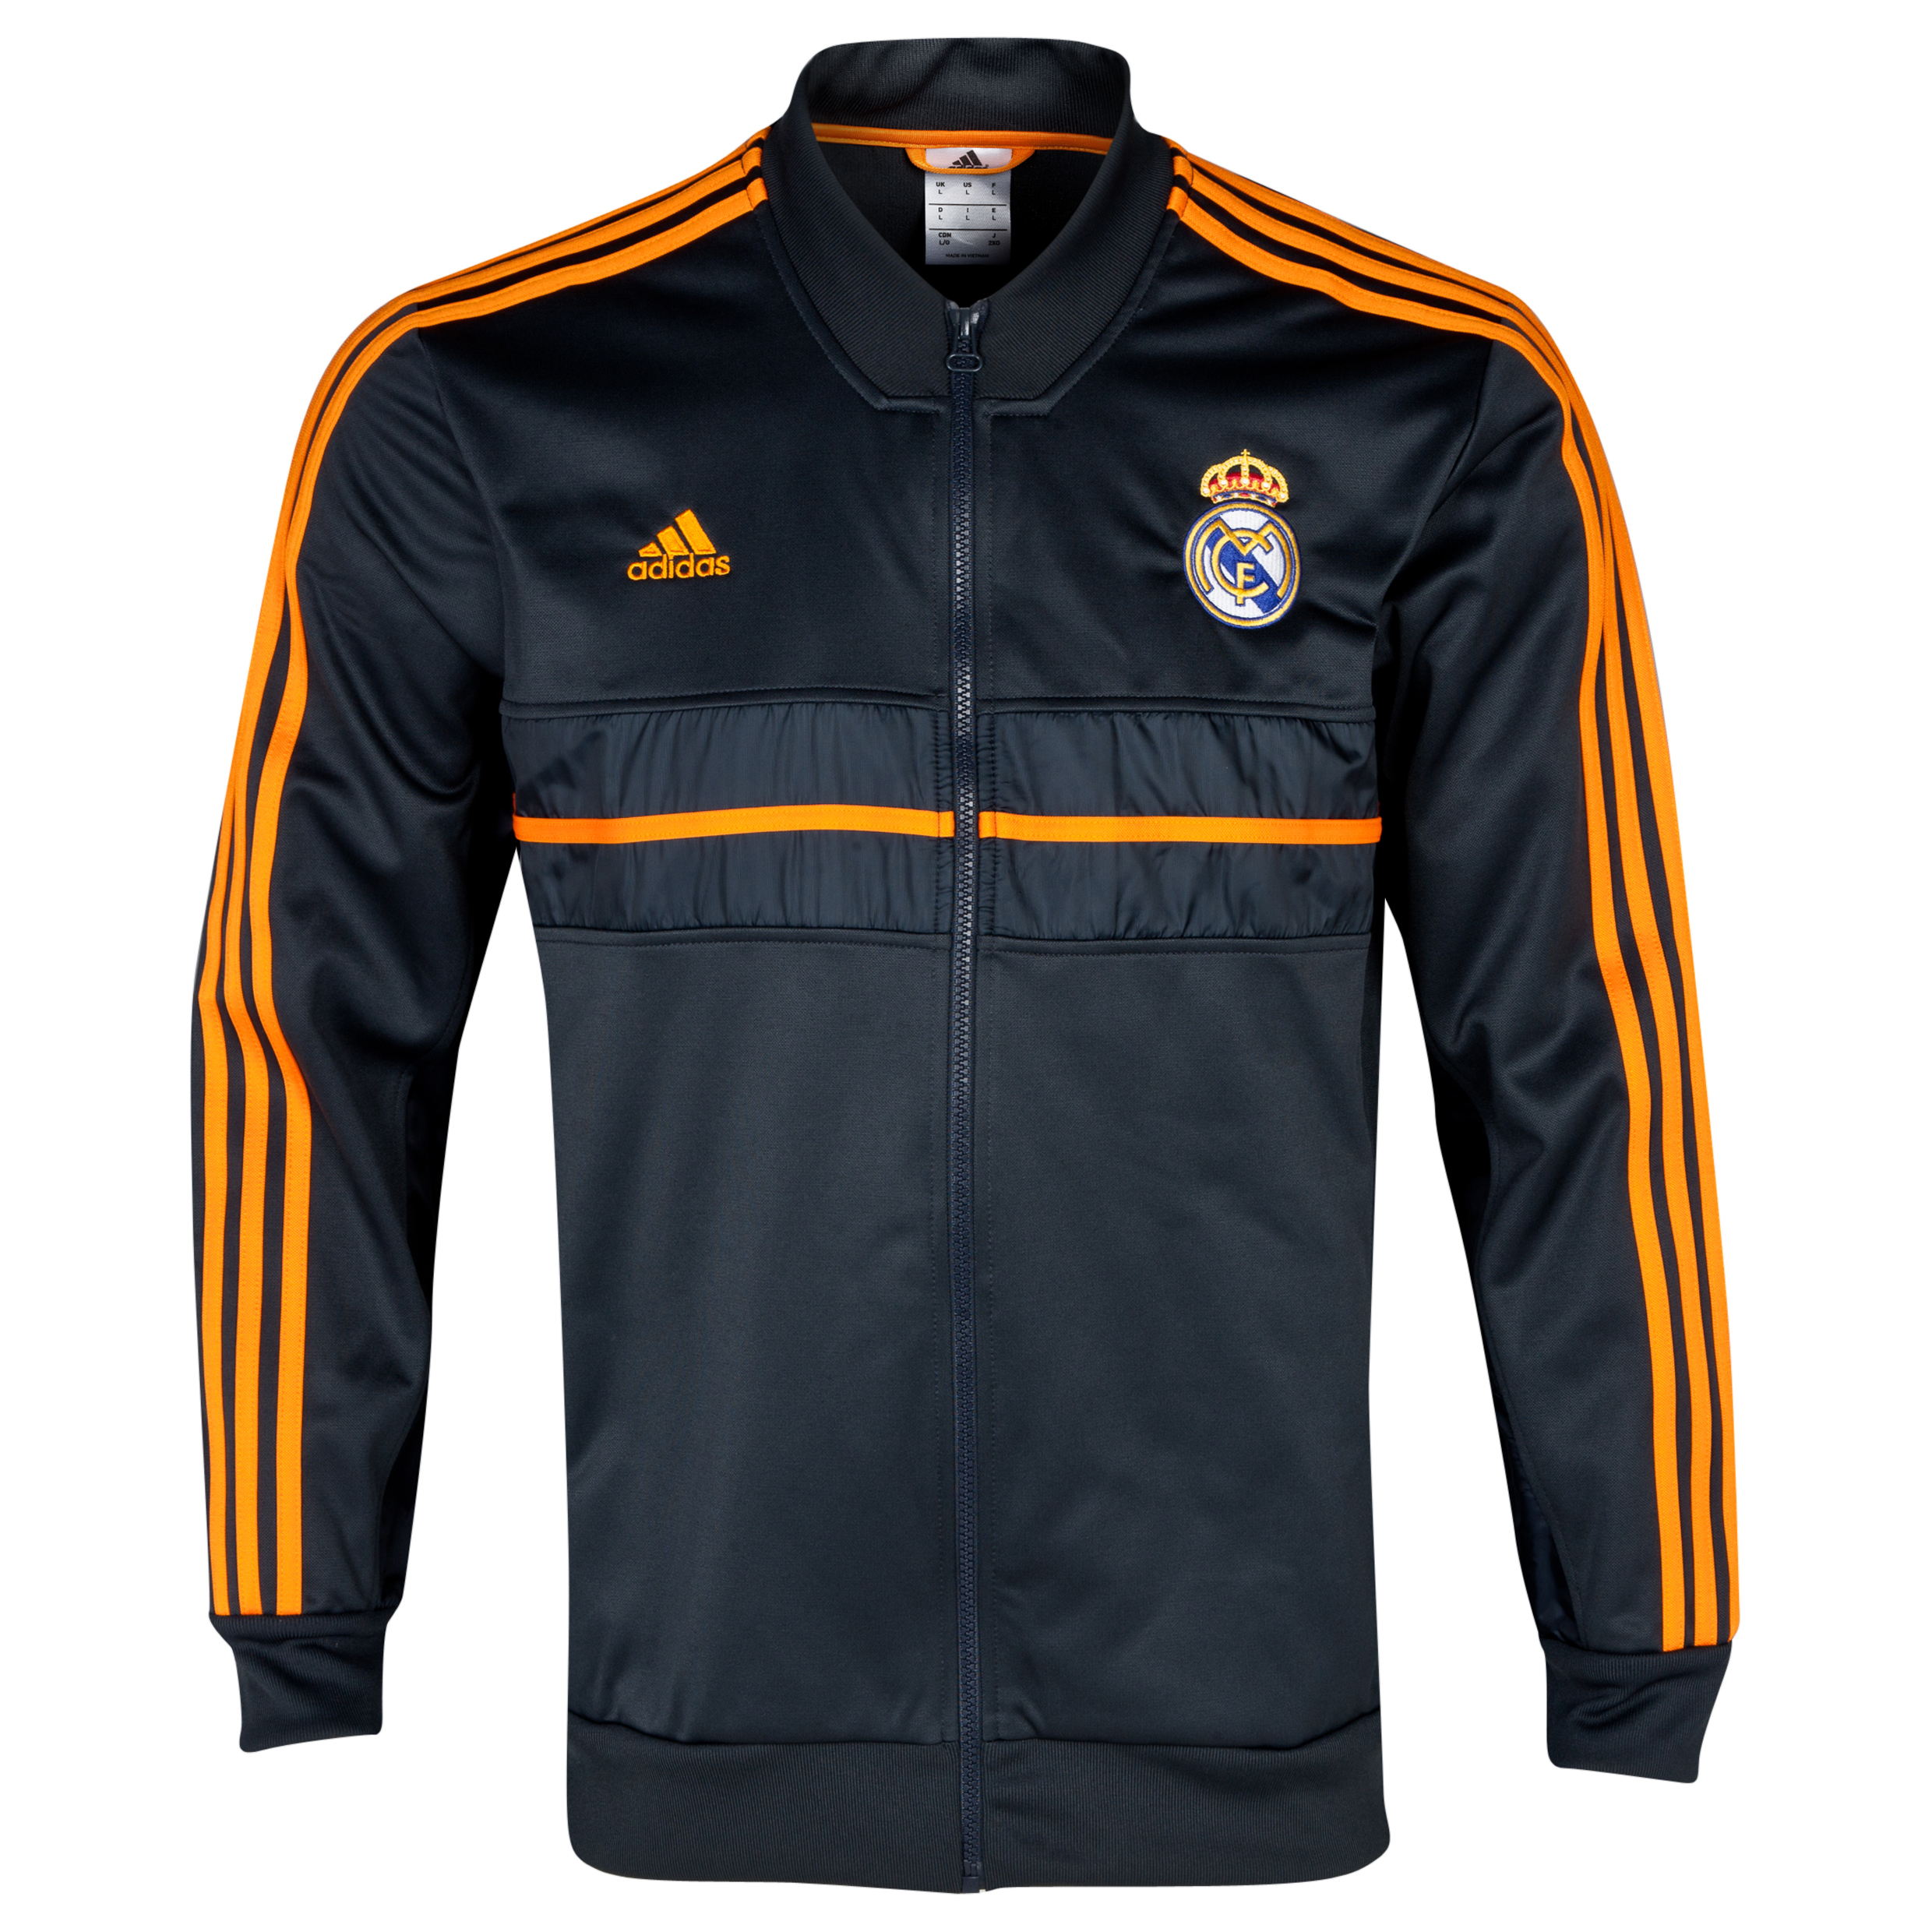 Real Madrid Anthem Jacket - Dark Shale/Zest Dk Blue